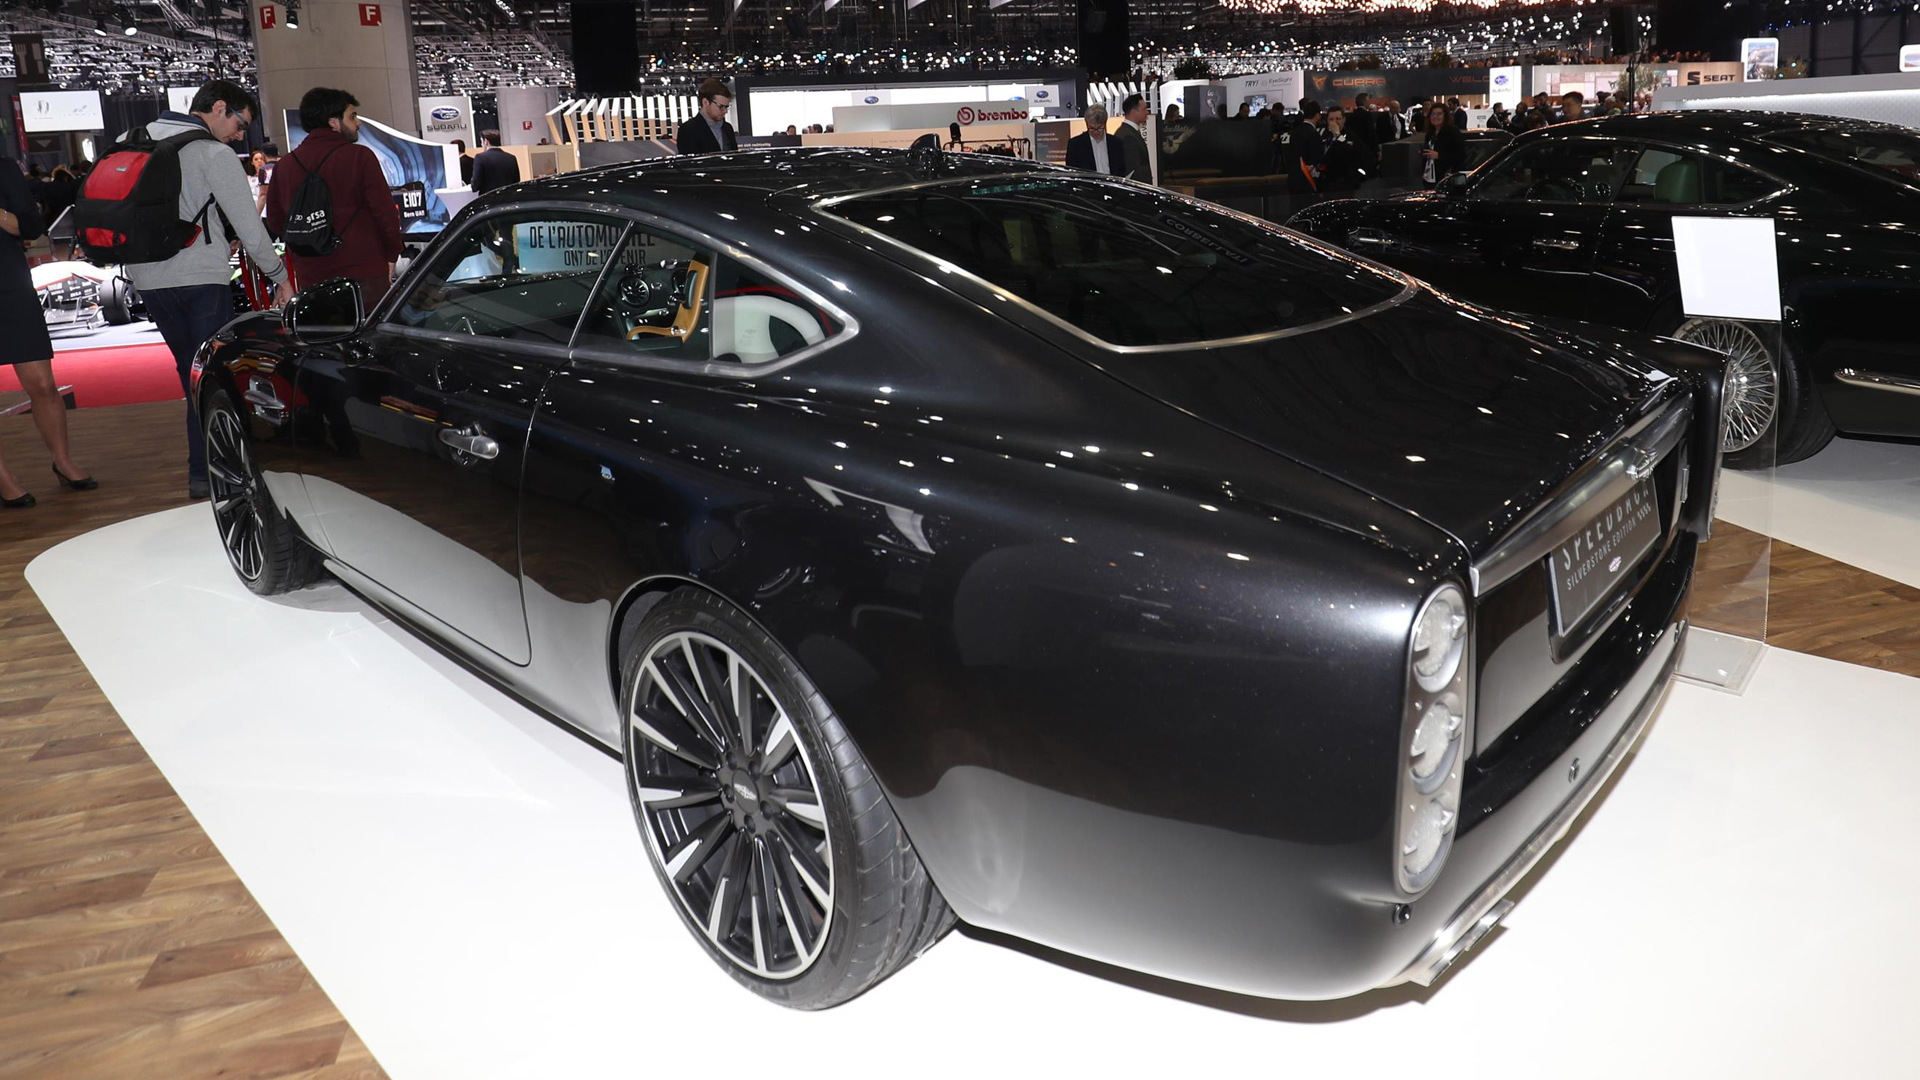 2018 David Brown Speedback Silverstone Edition